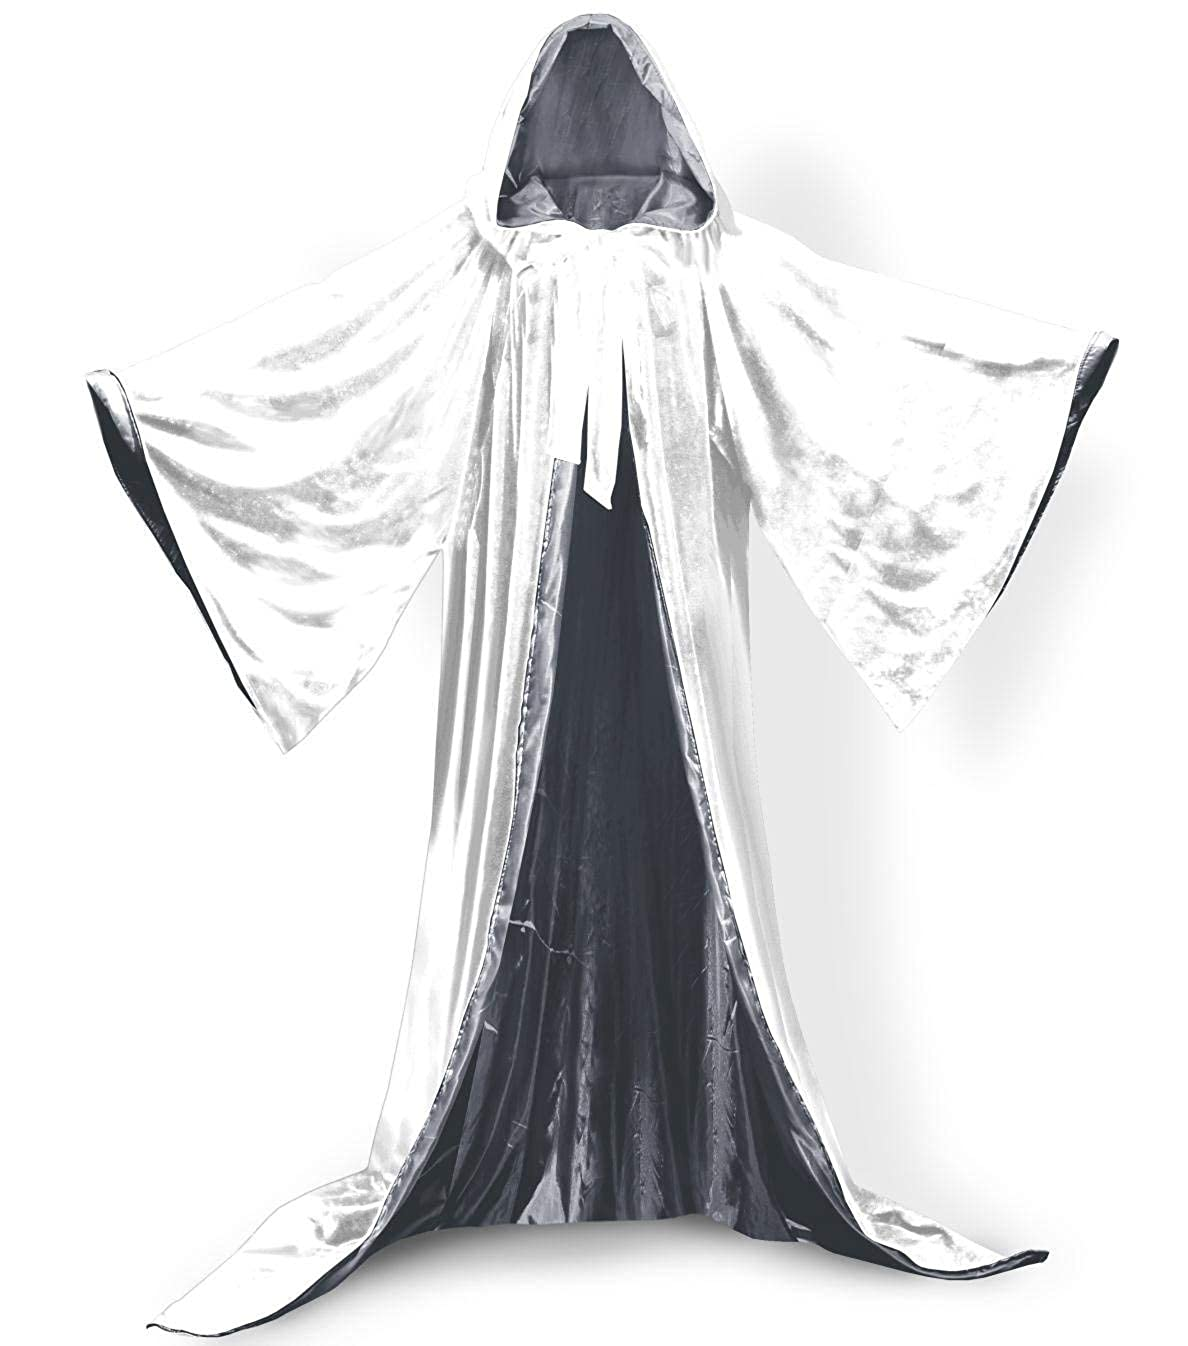 Whitesilver S ShineGown White Medieval Wizard Robe with Hoods Halloween Cloak Long Sleeves Velvet Unisex Masquerade for Christmas Party Costume Ball Gothic Full Length Cape Cosplay Fancy Coat Many colors